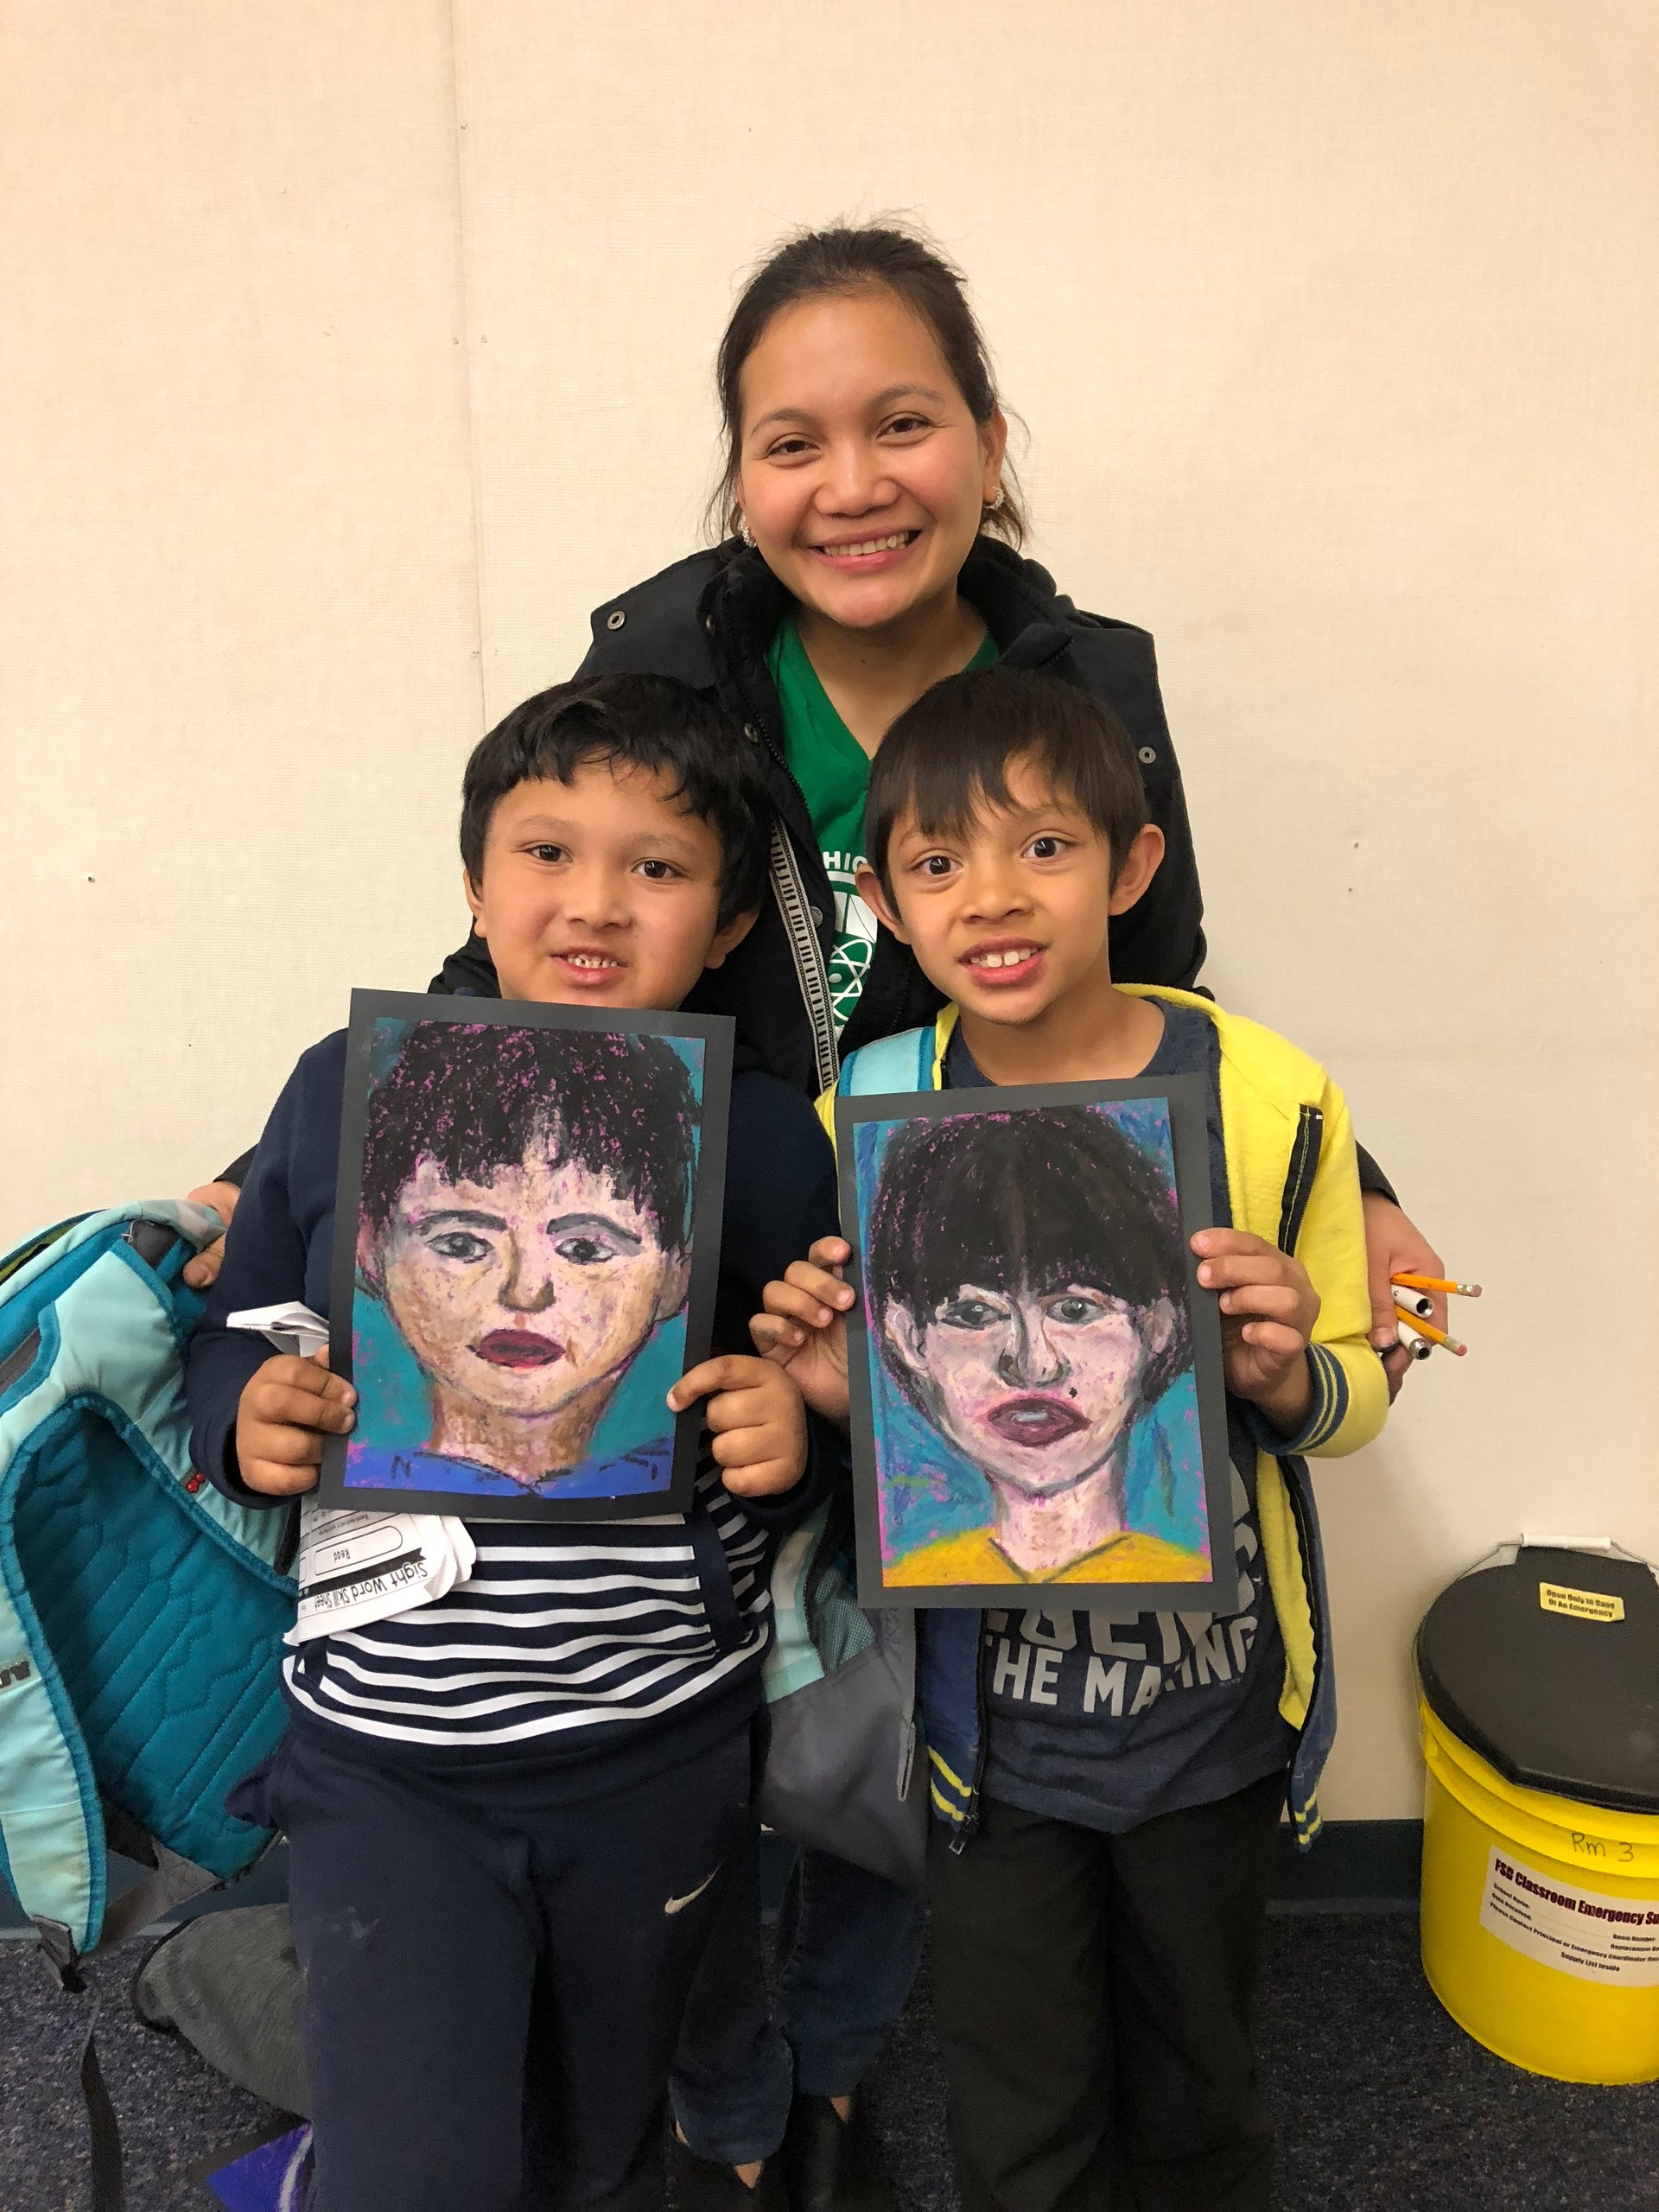 A mom .and her two sons showing their oil pastel portraits